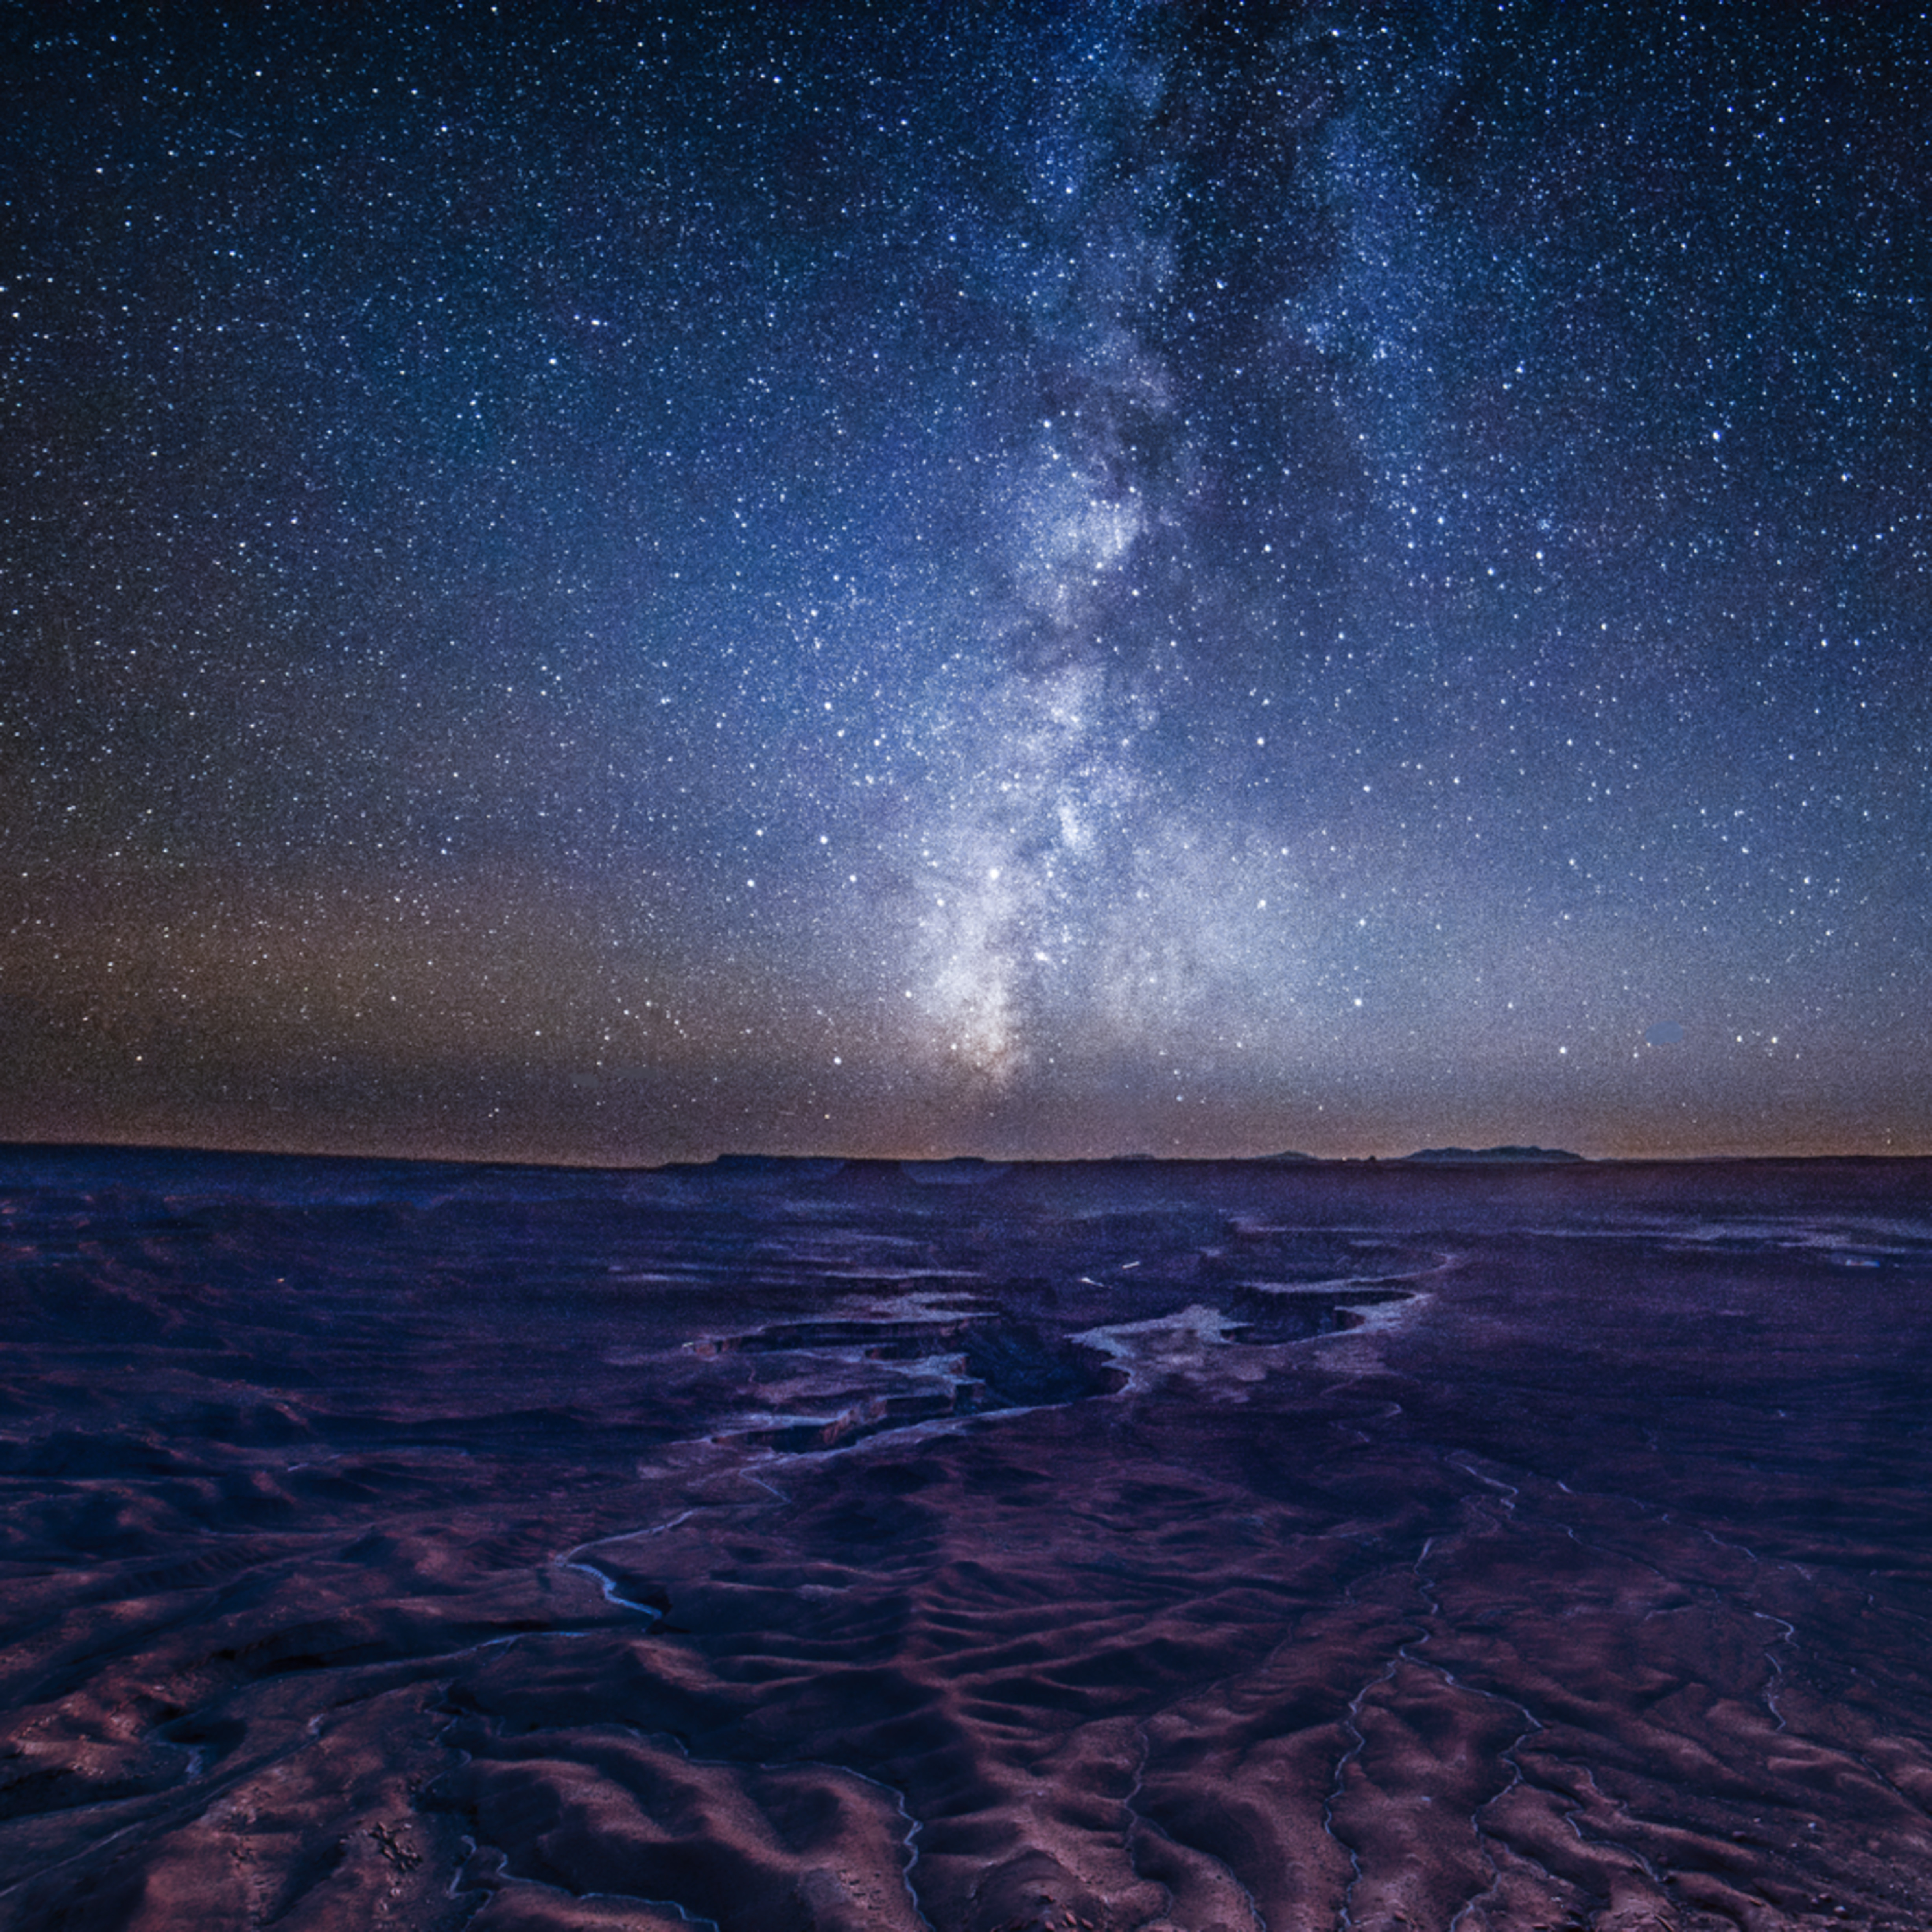 Andy crawford photography 181107 canyonalnds national park milky way 001 gfqn6e